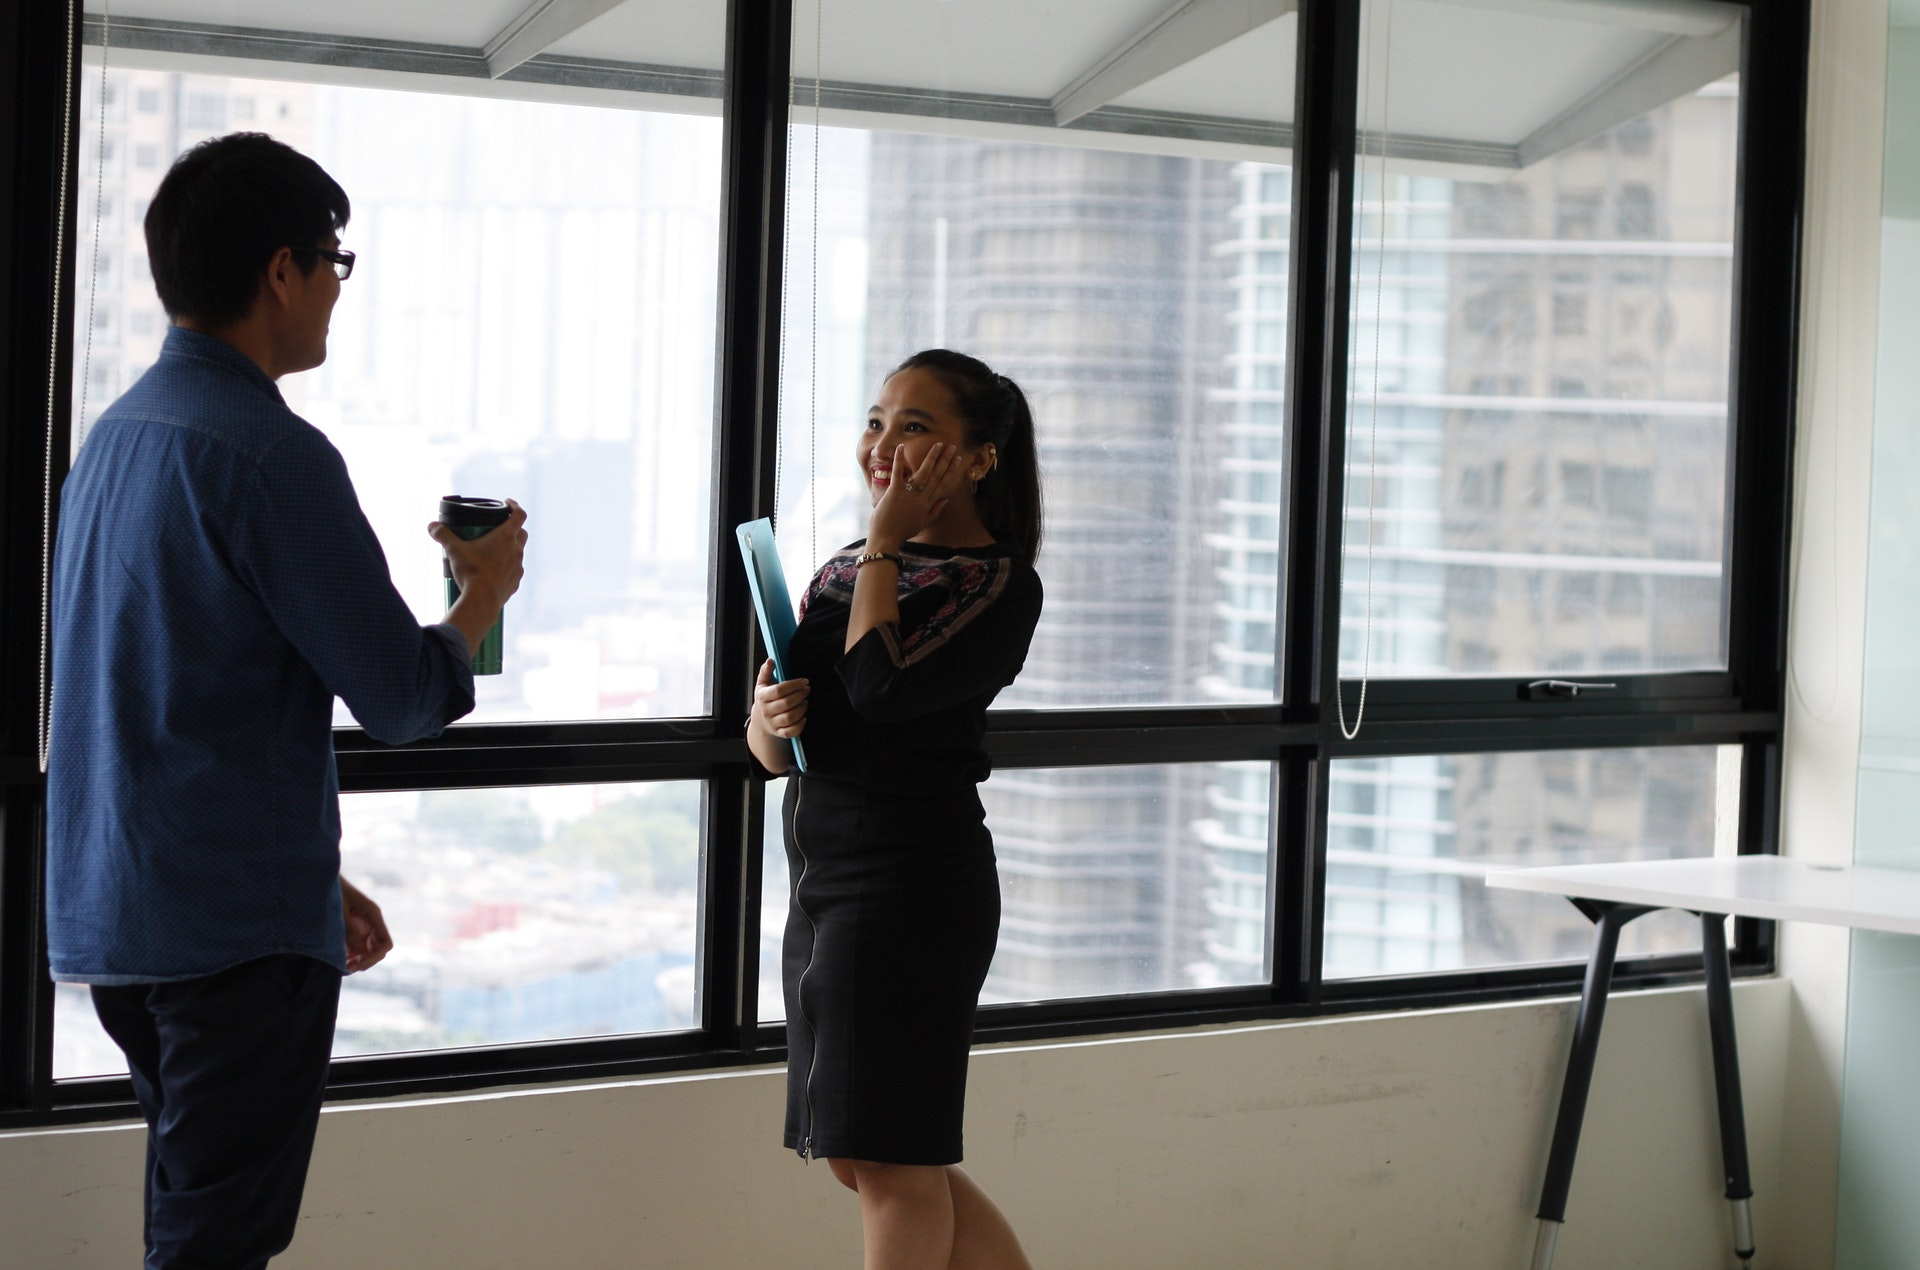 Don't leave me this way: How to increase employee retention